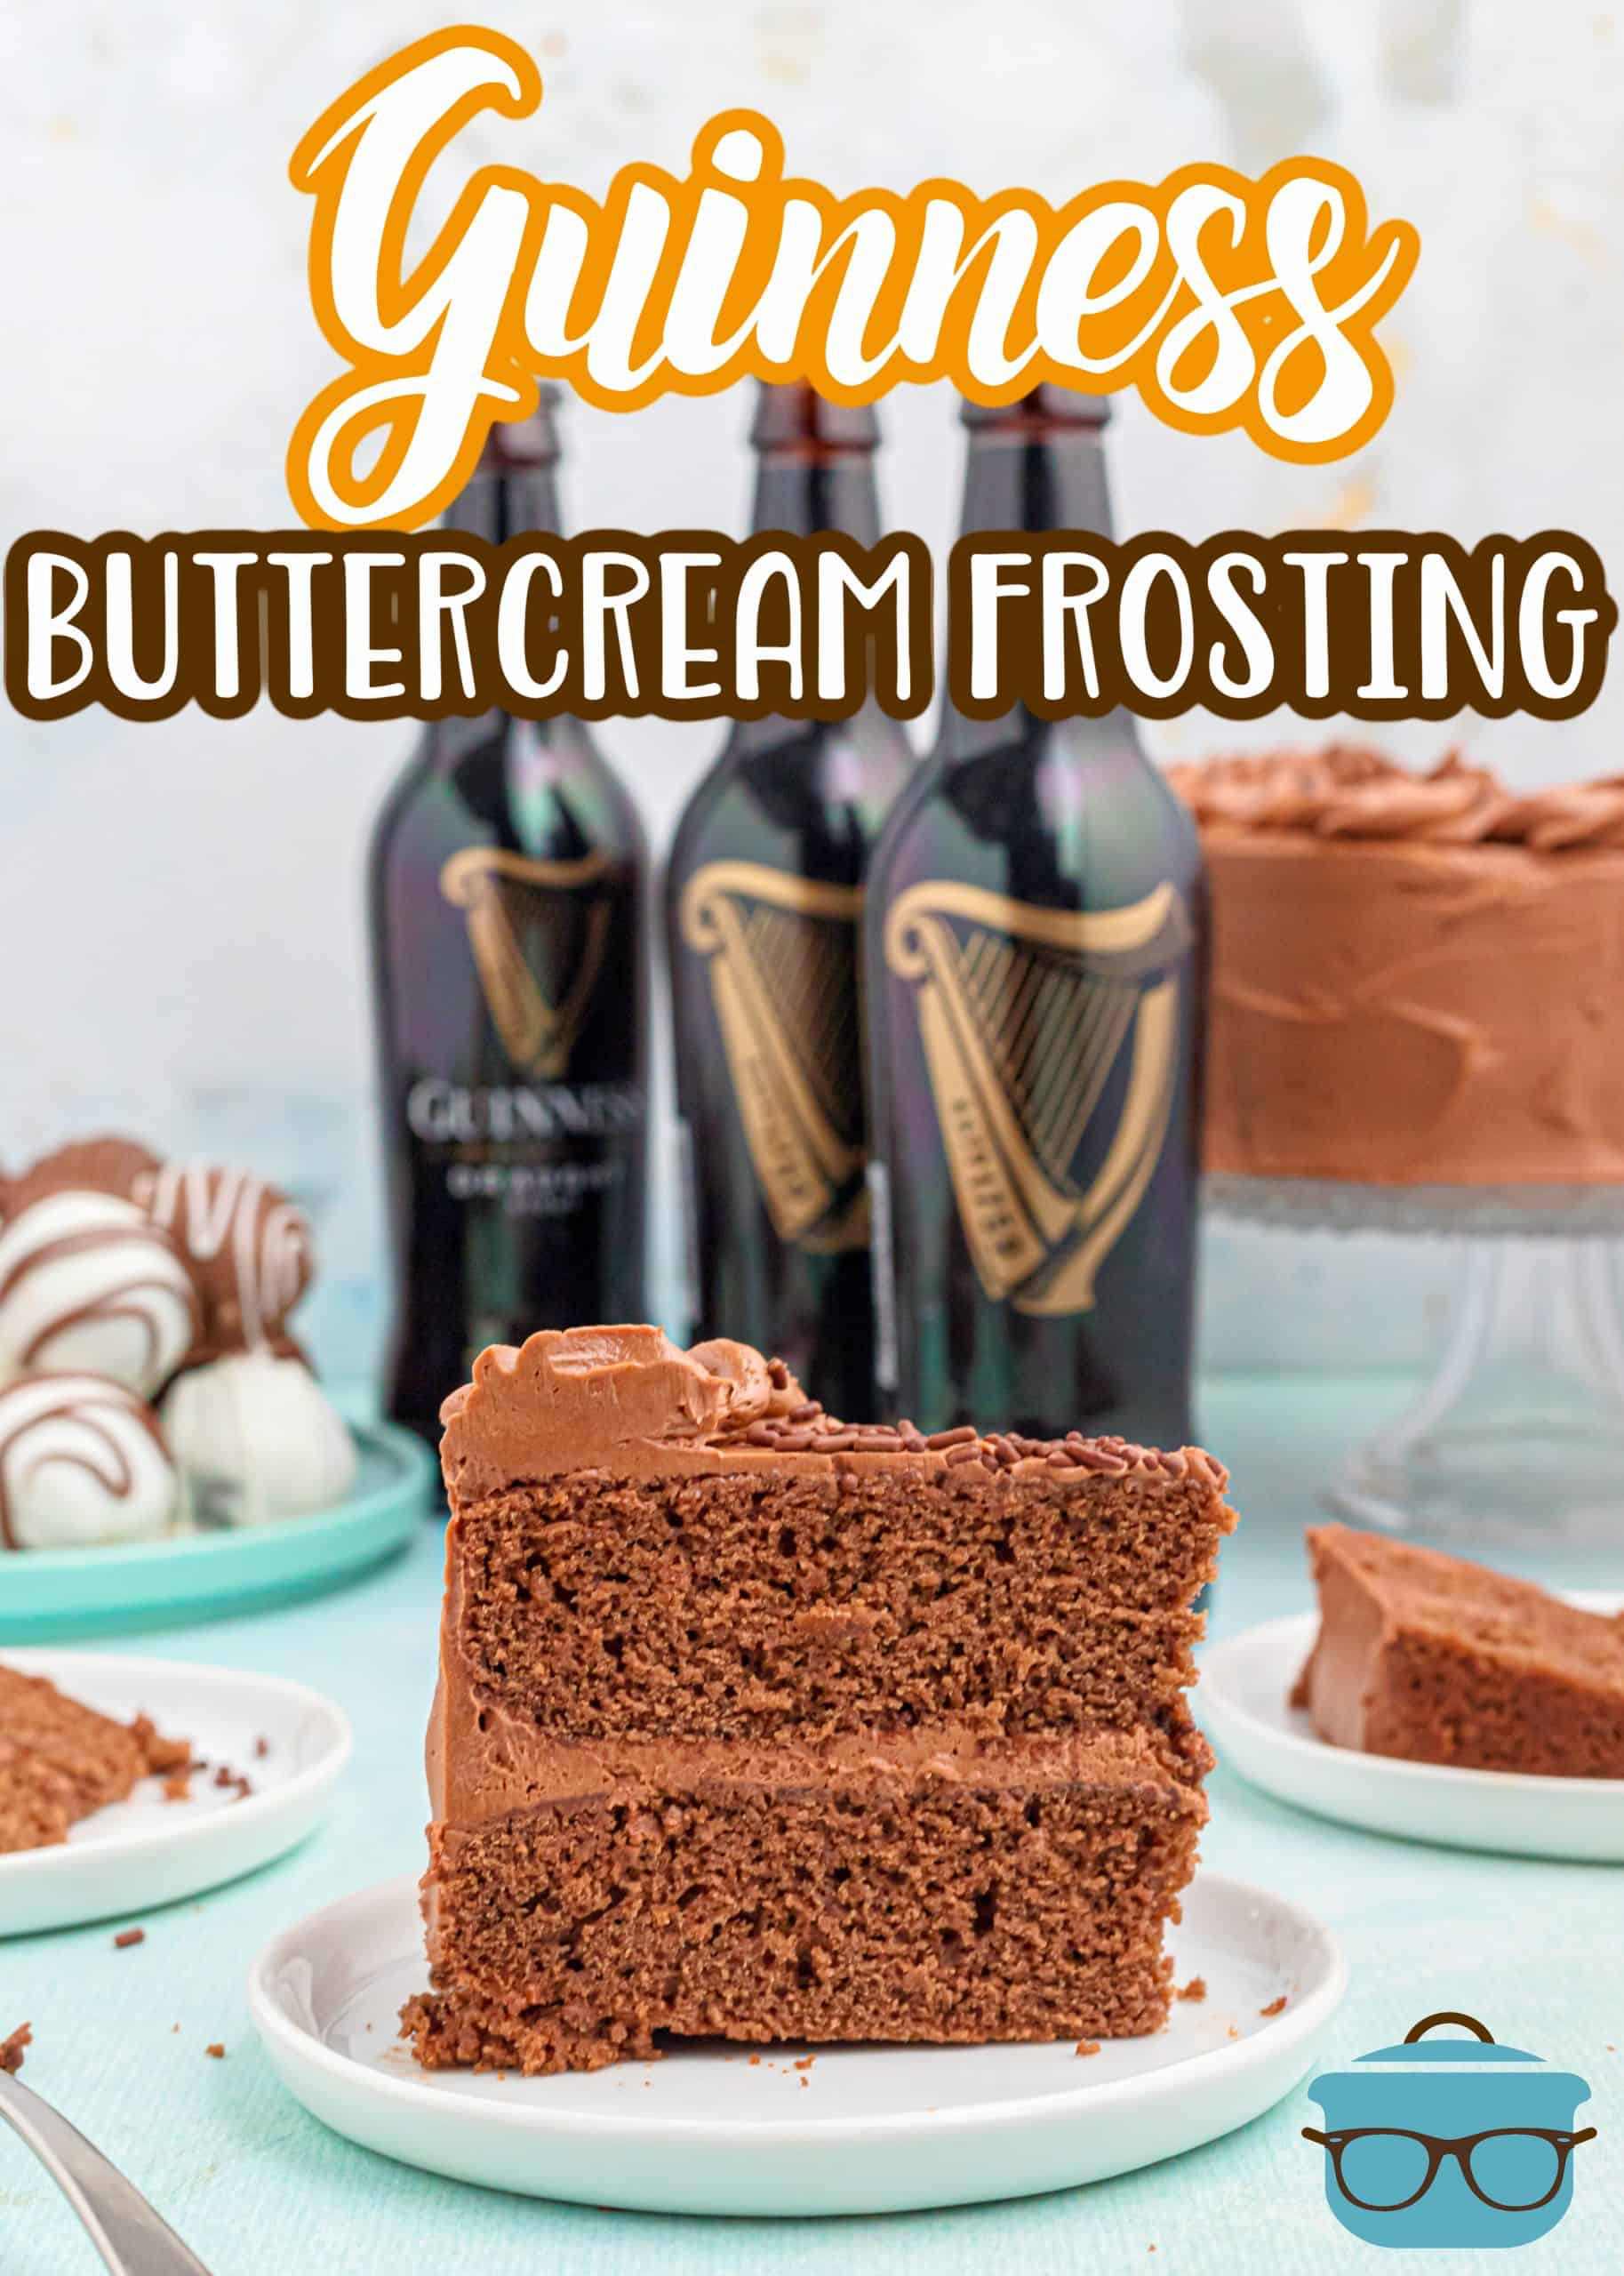 This Guinness Chocolate Buttercream Frosting is a smooth, rich, delicious frosting that has the perfect chocolate flavor and just a hint of Guinness stout beer.